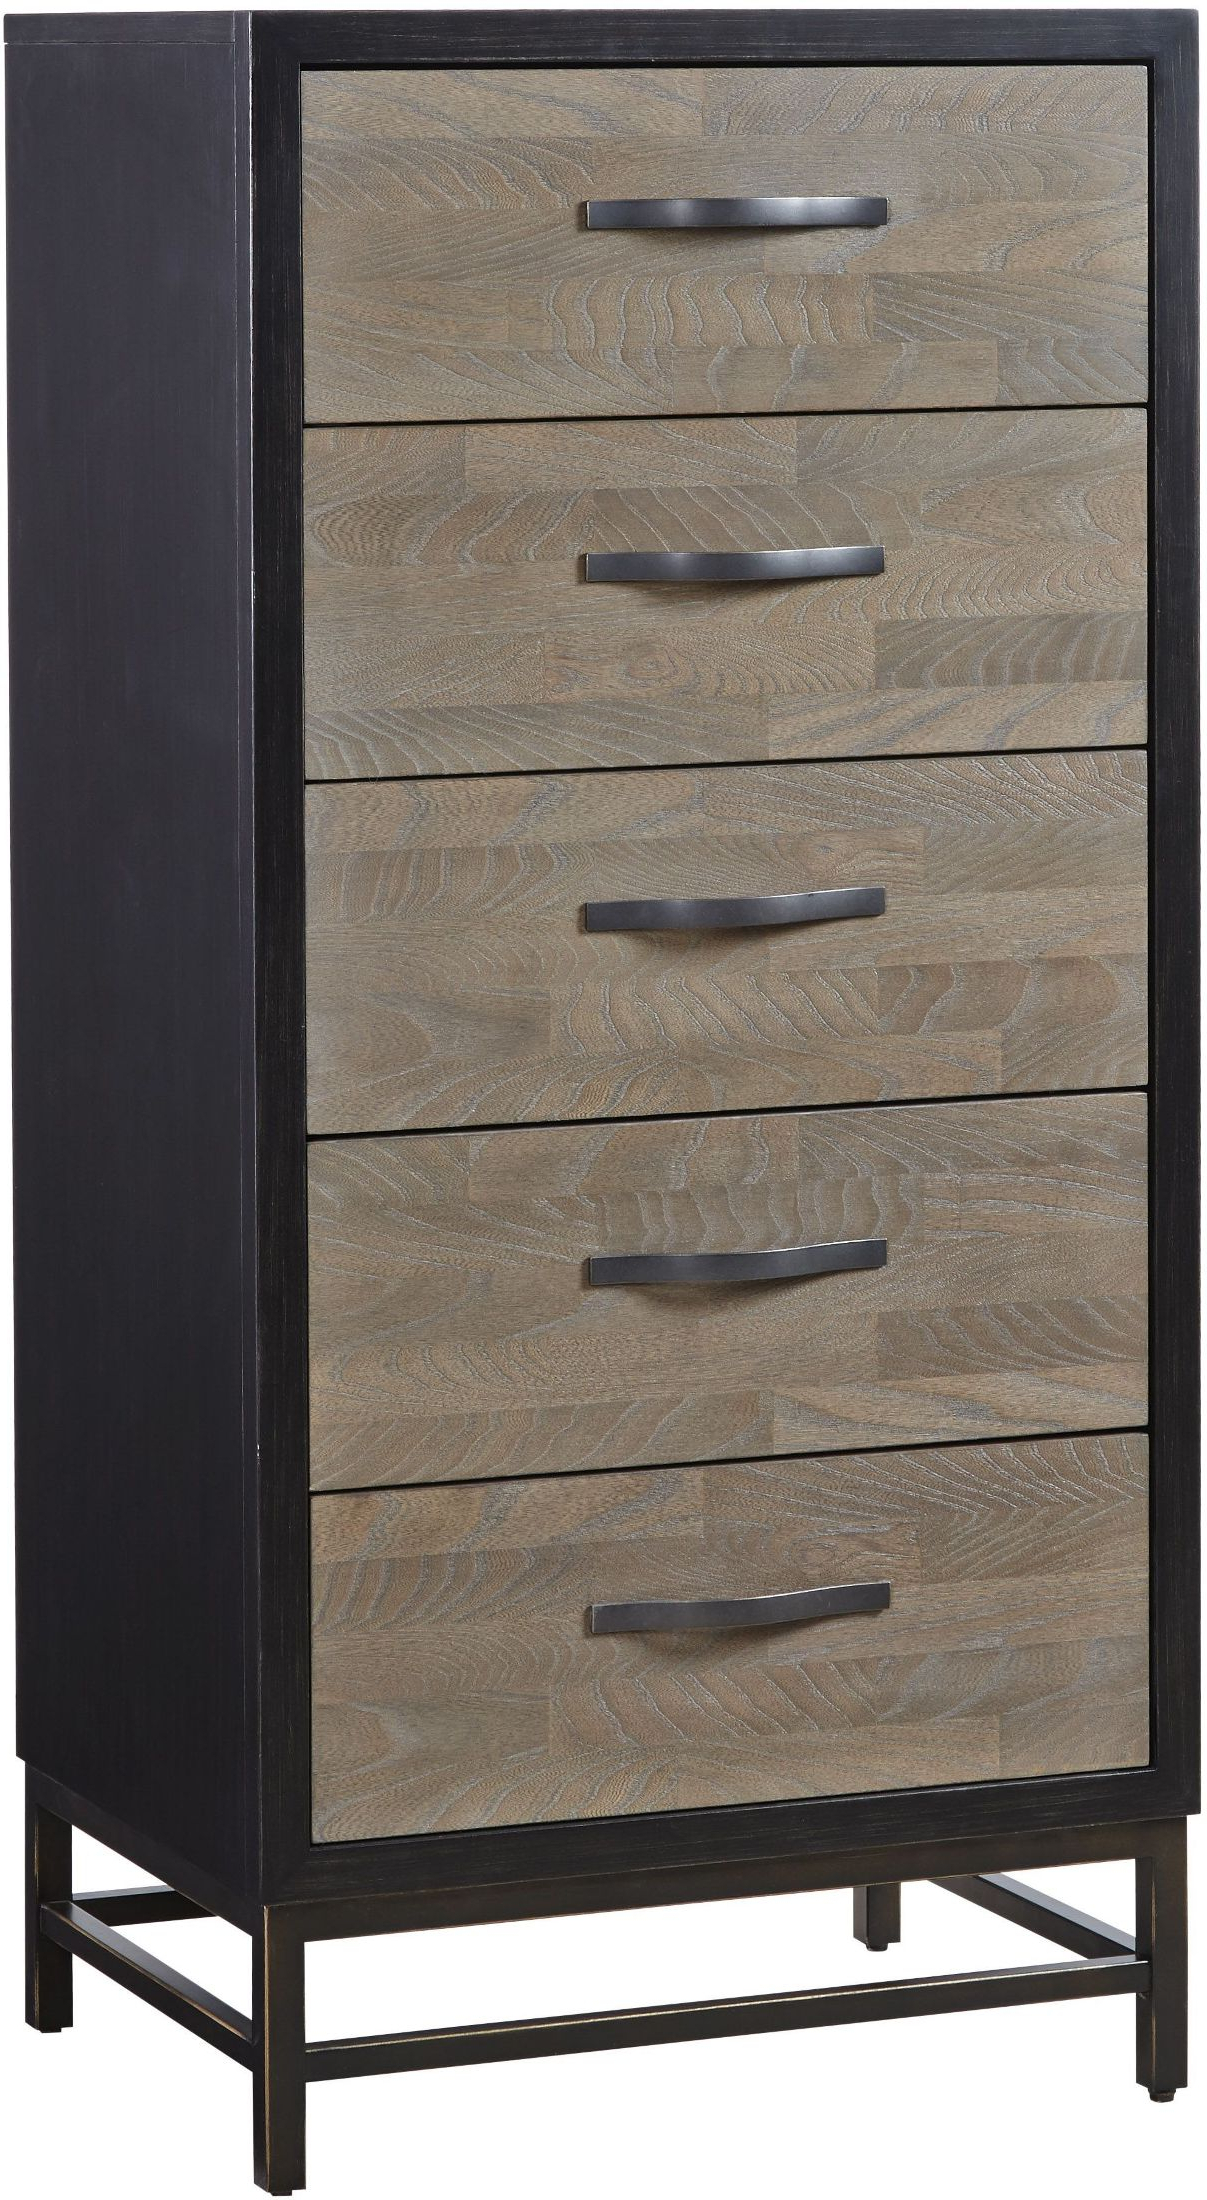 Preferred Mandara 3 Drawer 2 Door Sideboards Inside Curated Chalkboard Narrow Chest (Gallery 7 of 20)